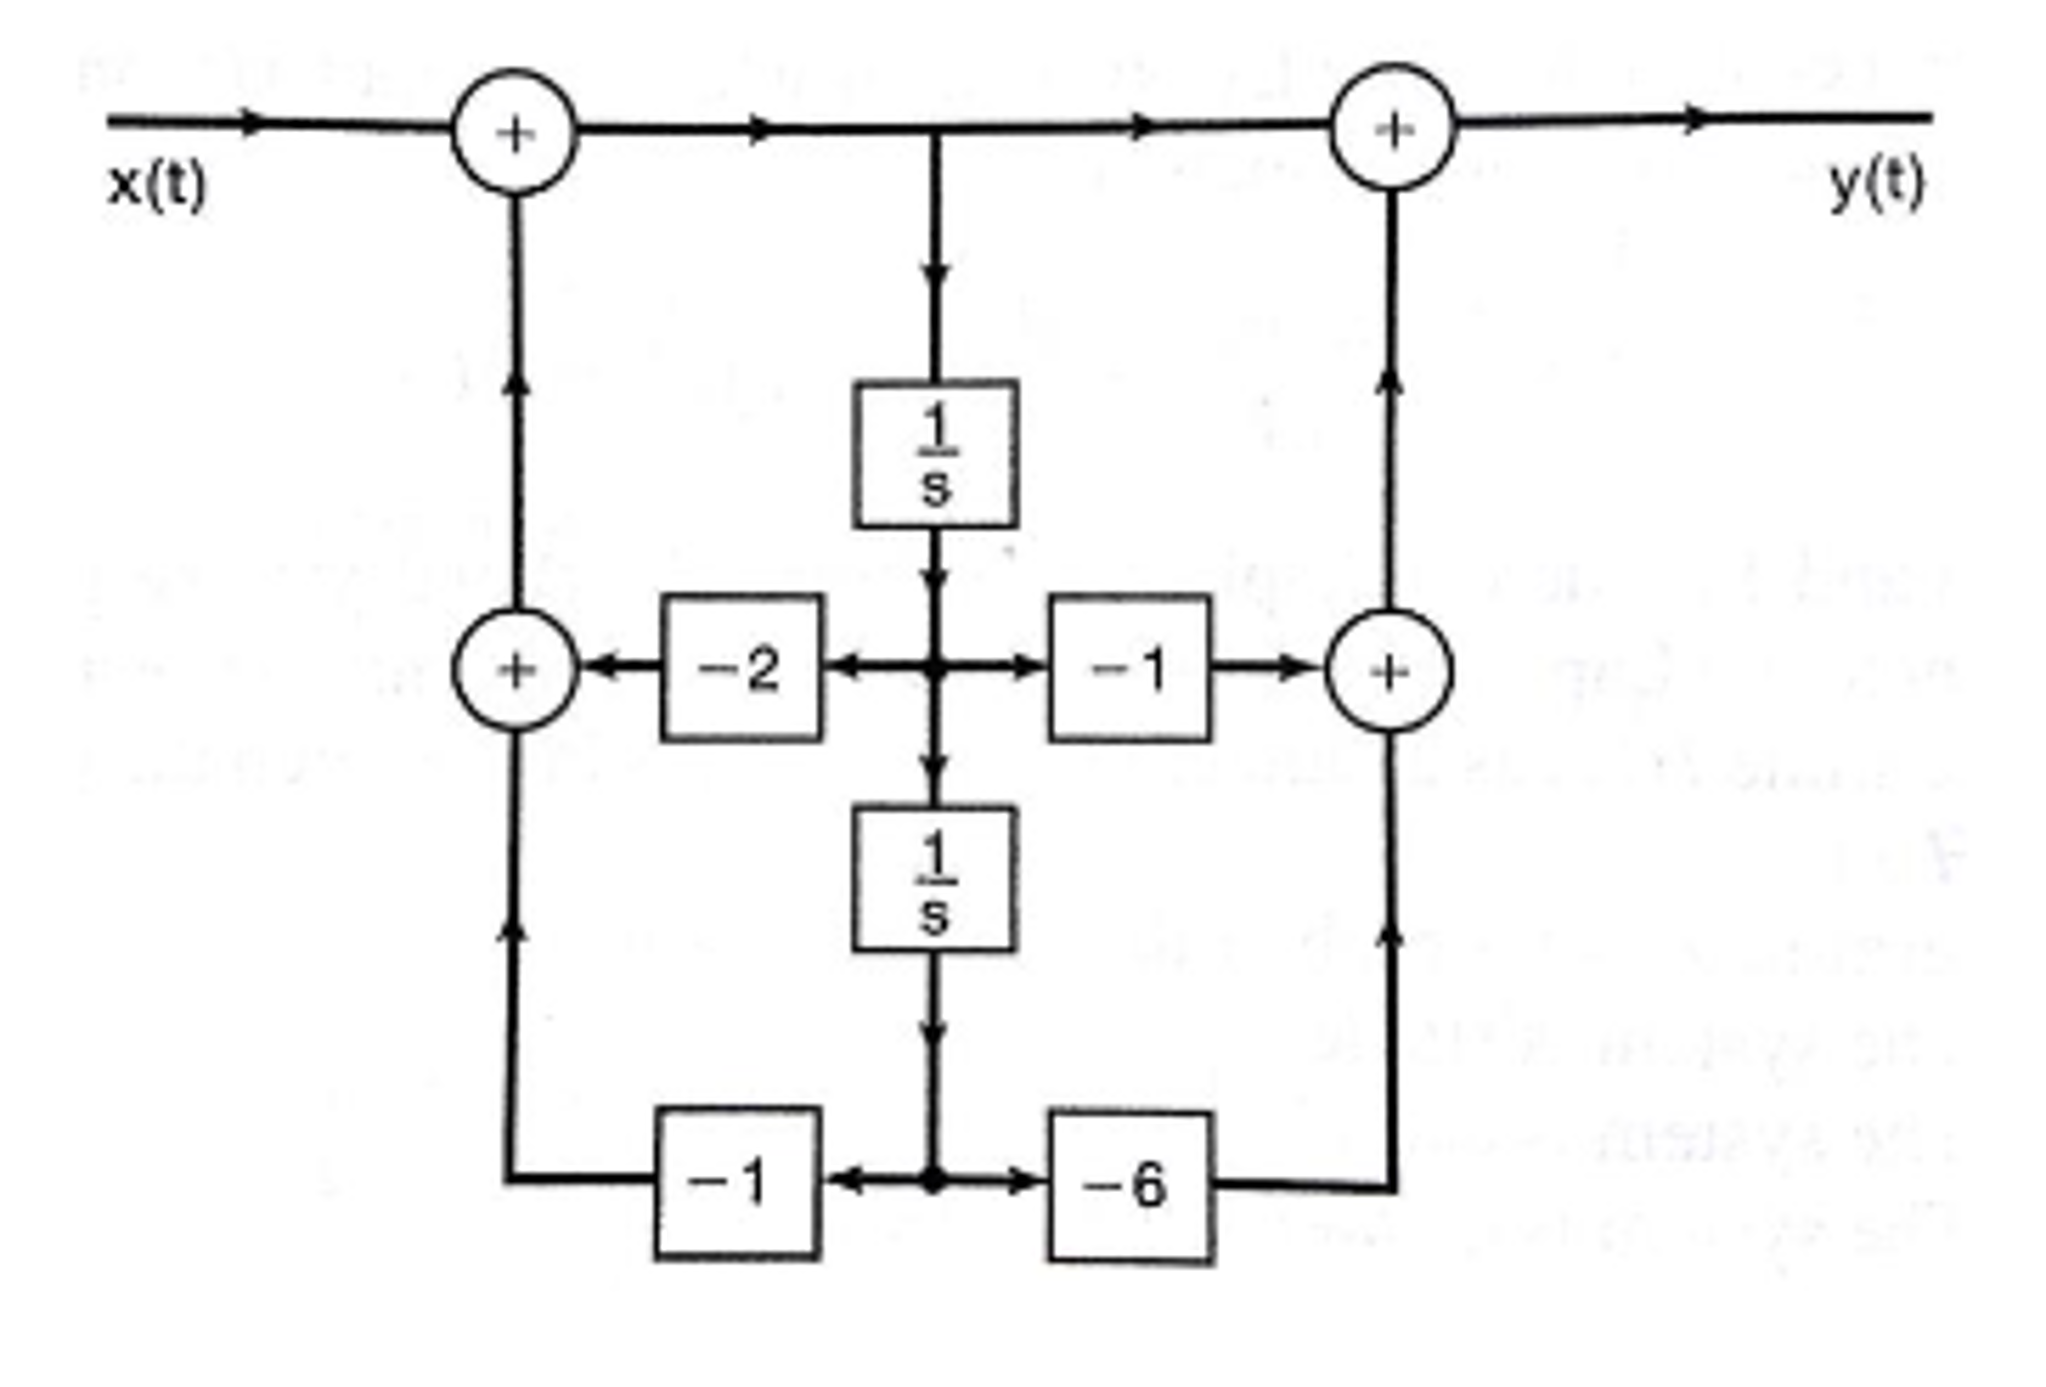 Question: Given the following block diagram, determine the differential  equation relating y(t) and x(t).